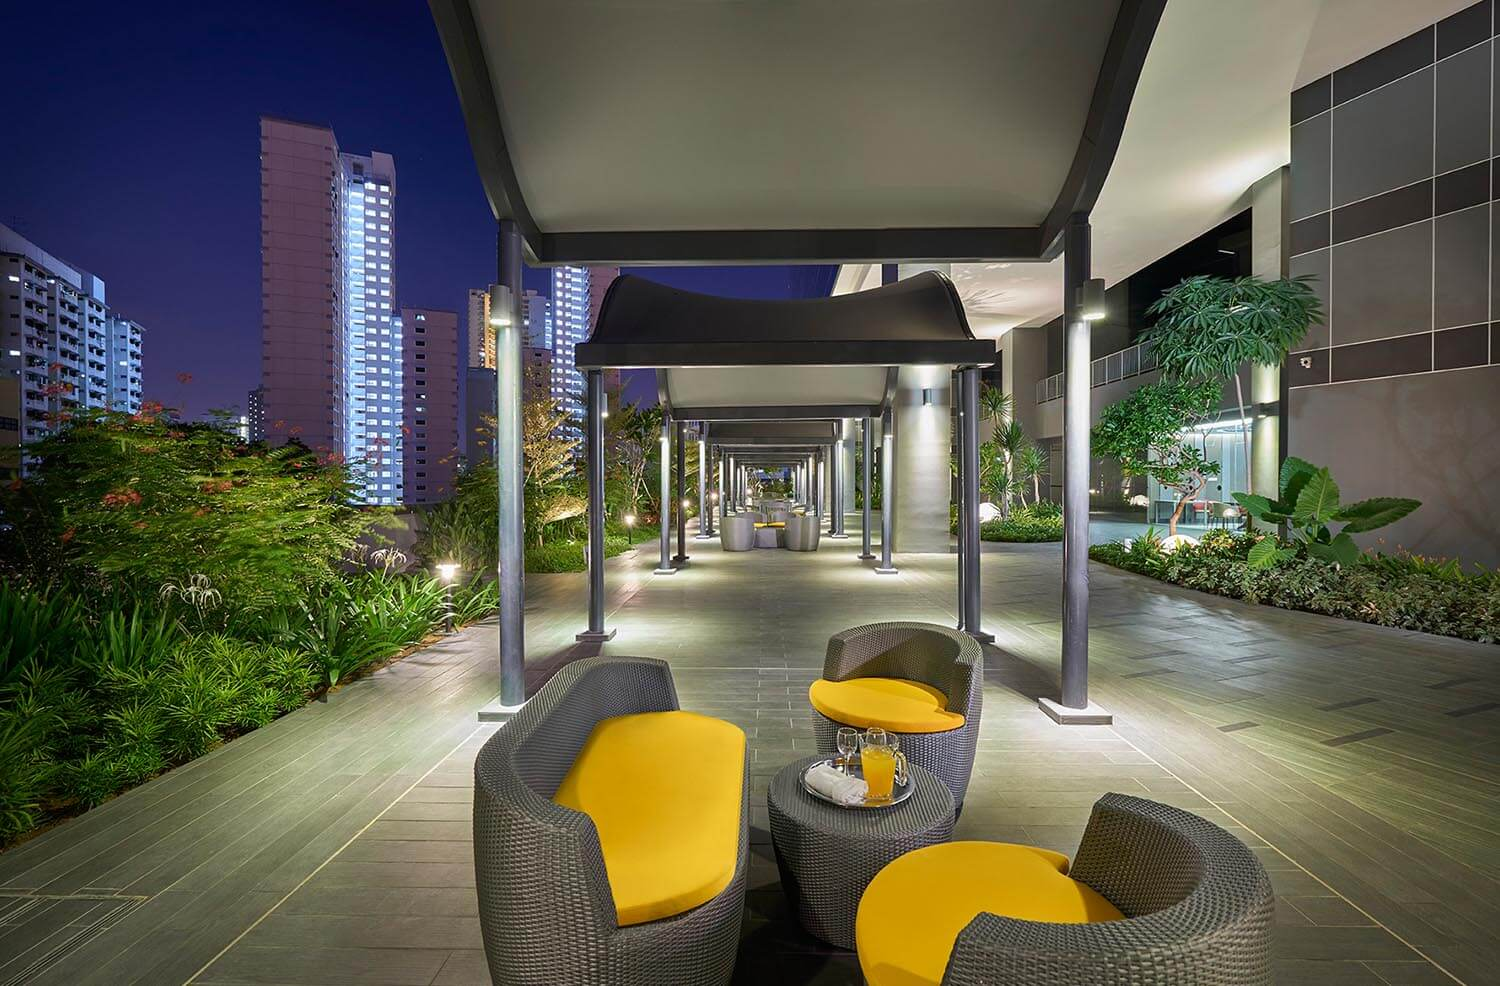 Hotel Boss alfresco area